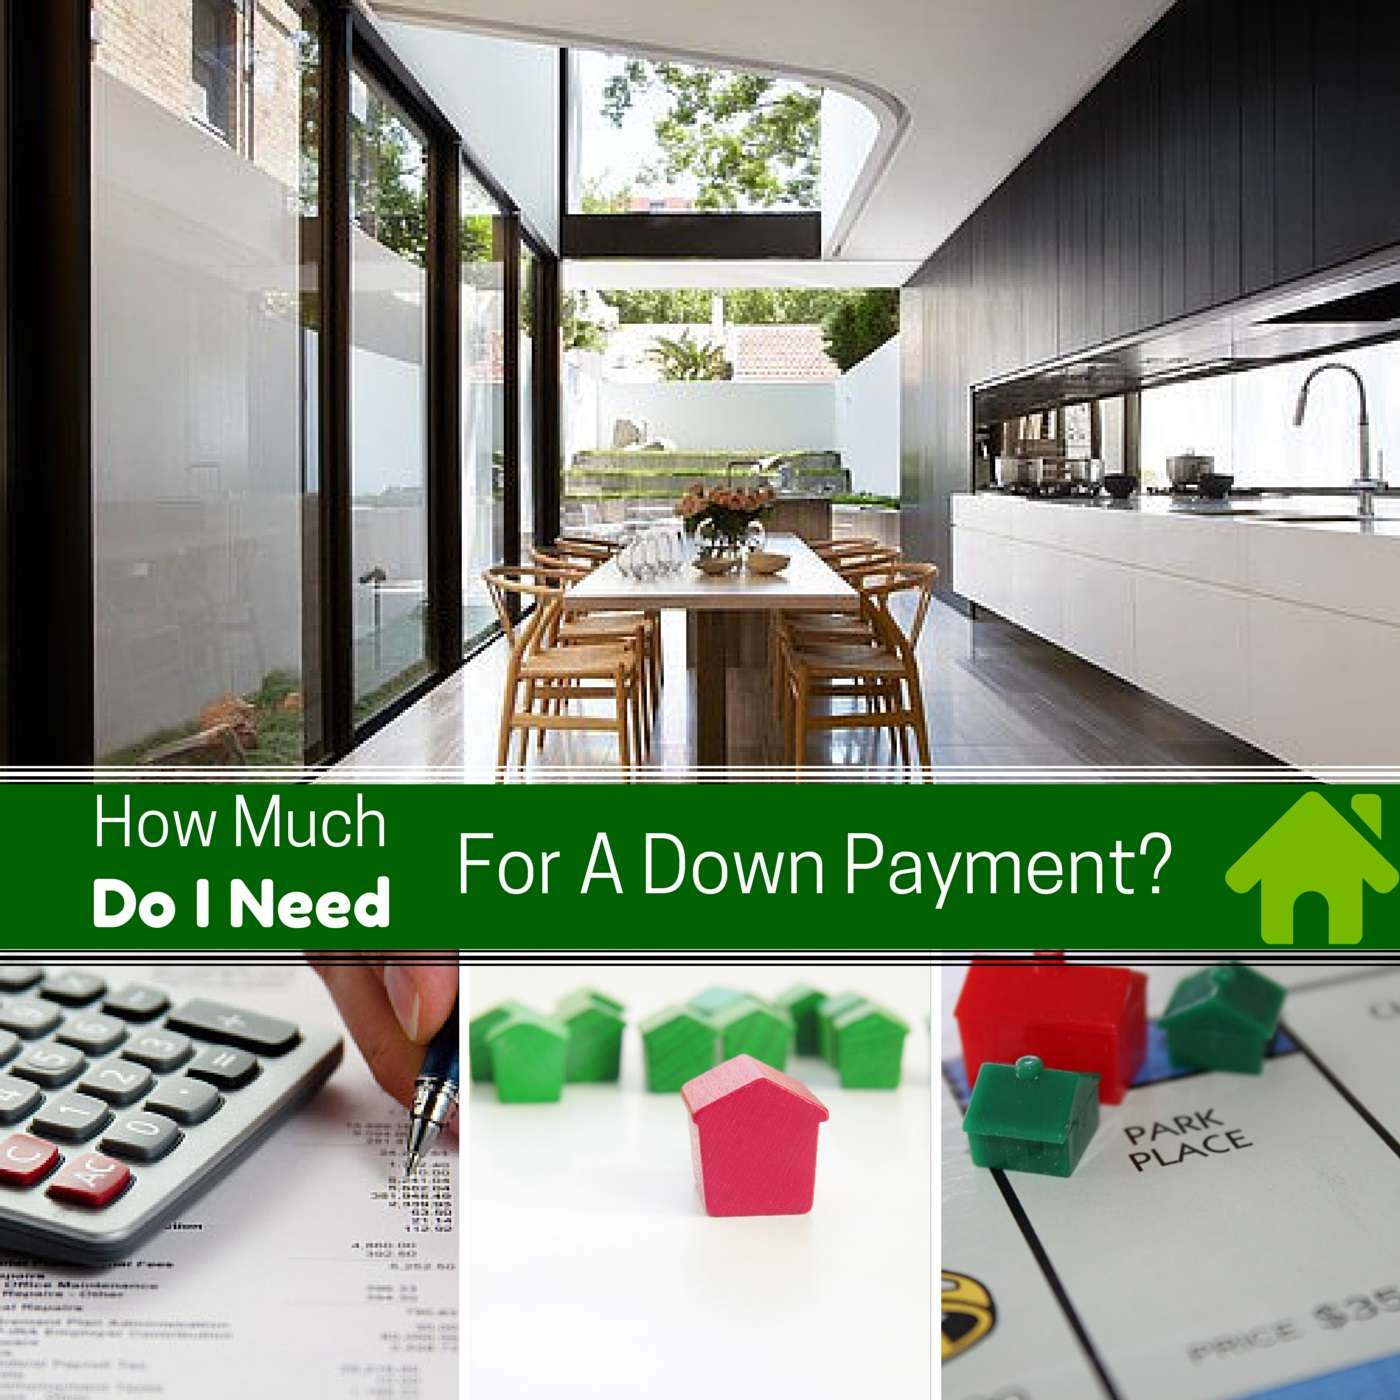 how much for a downpayment on a house?